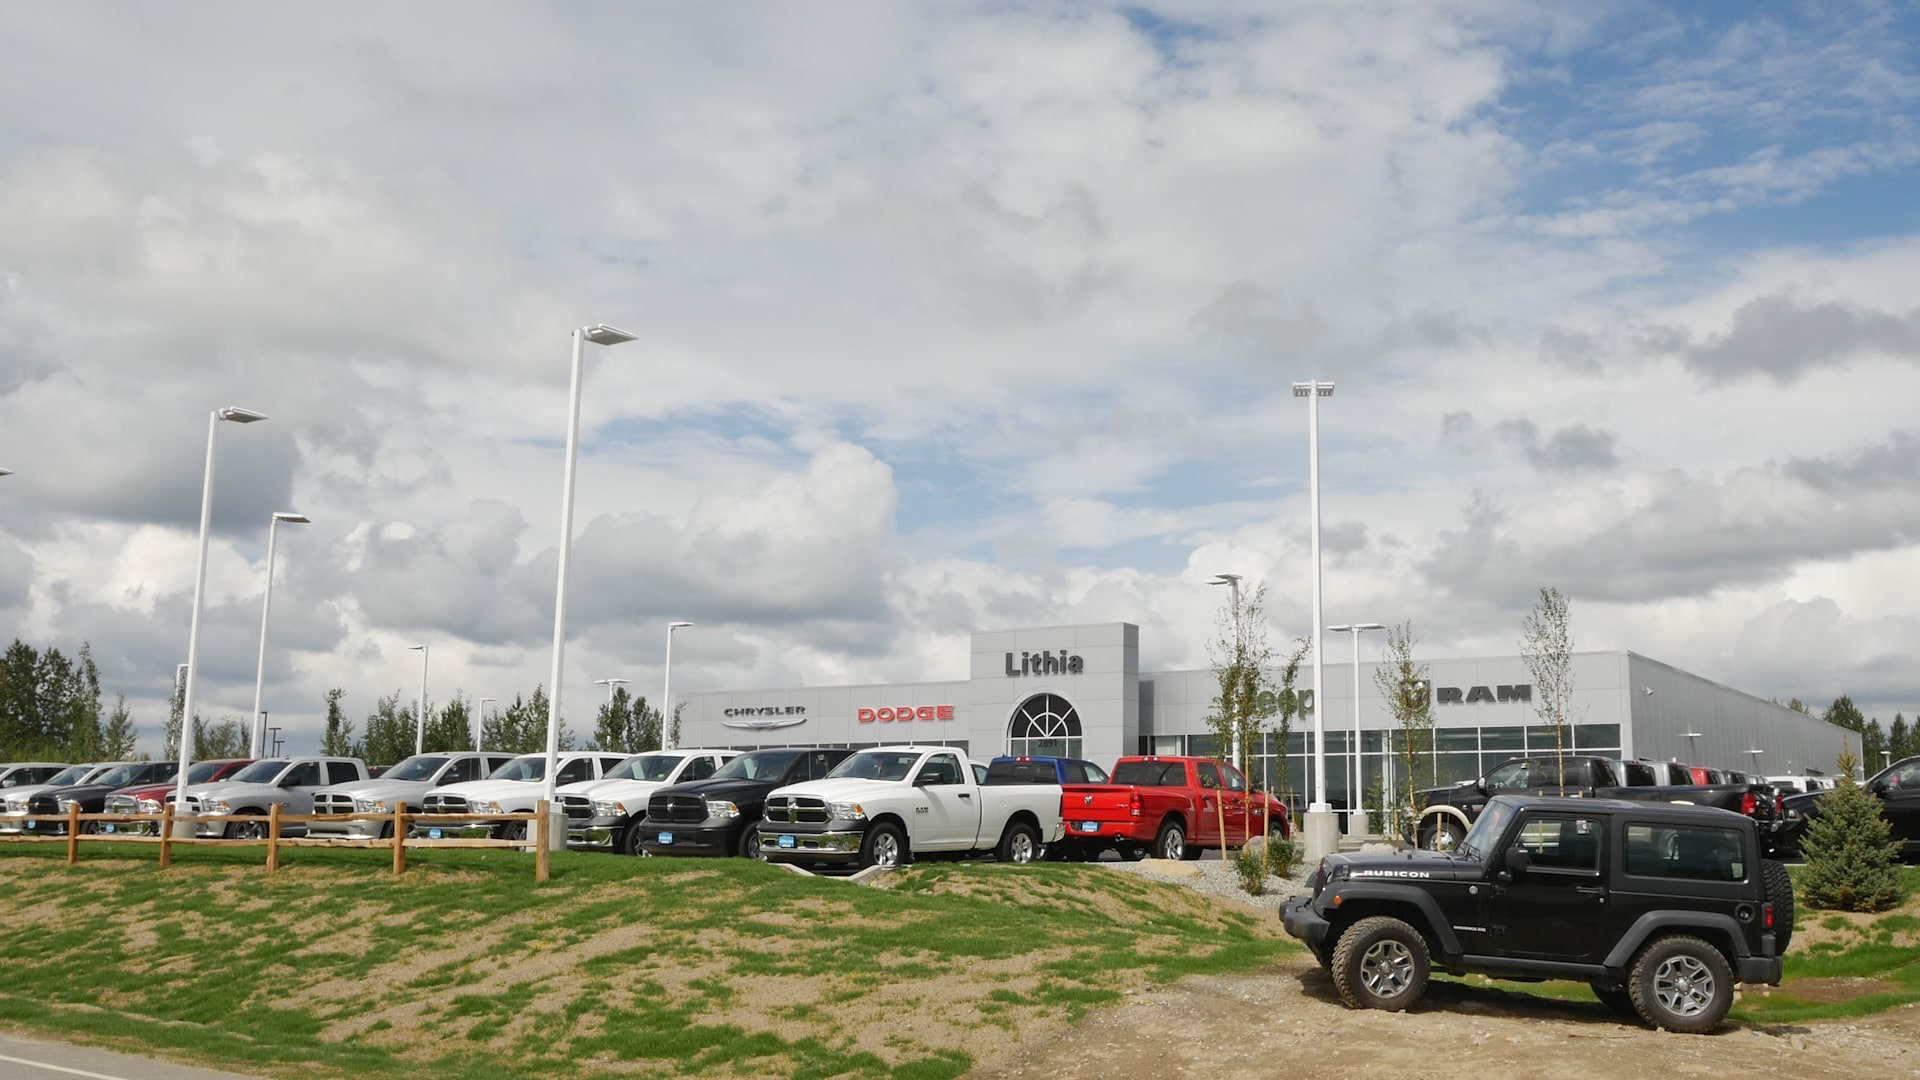 About Lithia Chrysler Jeep Dodge Ram Of Wasilla New Used Car - Lithia chrysler